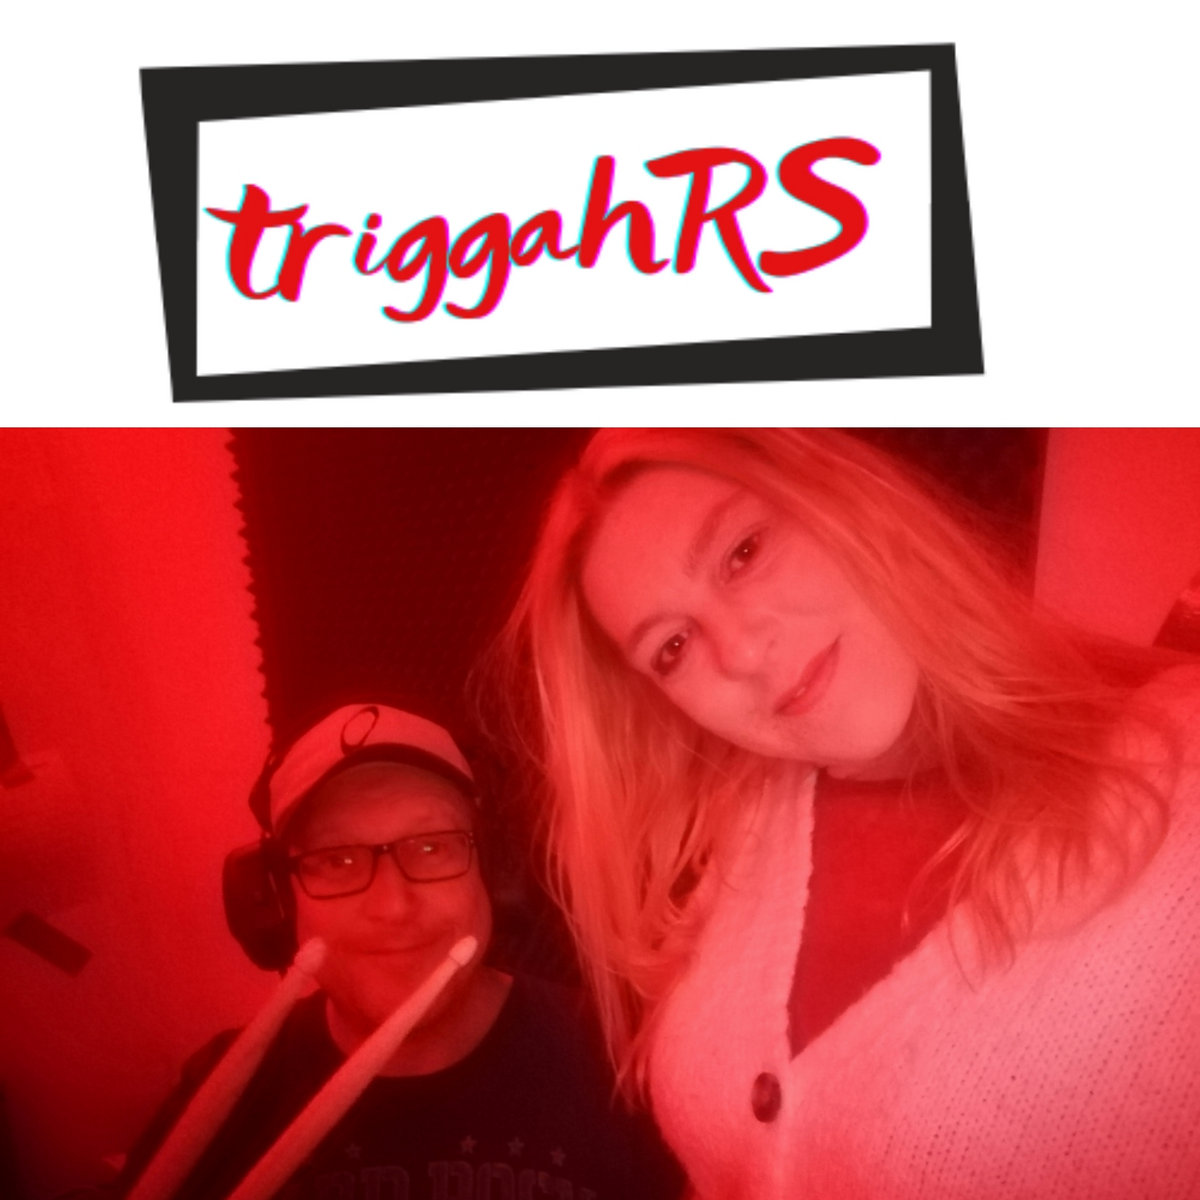 For You by triggahRS